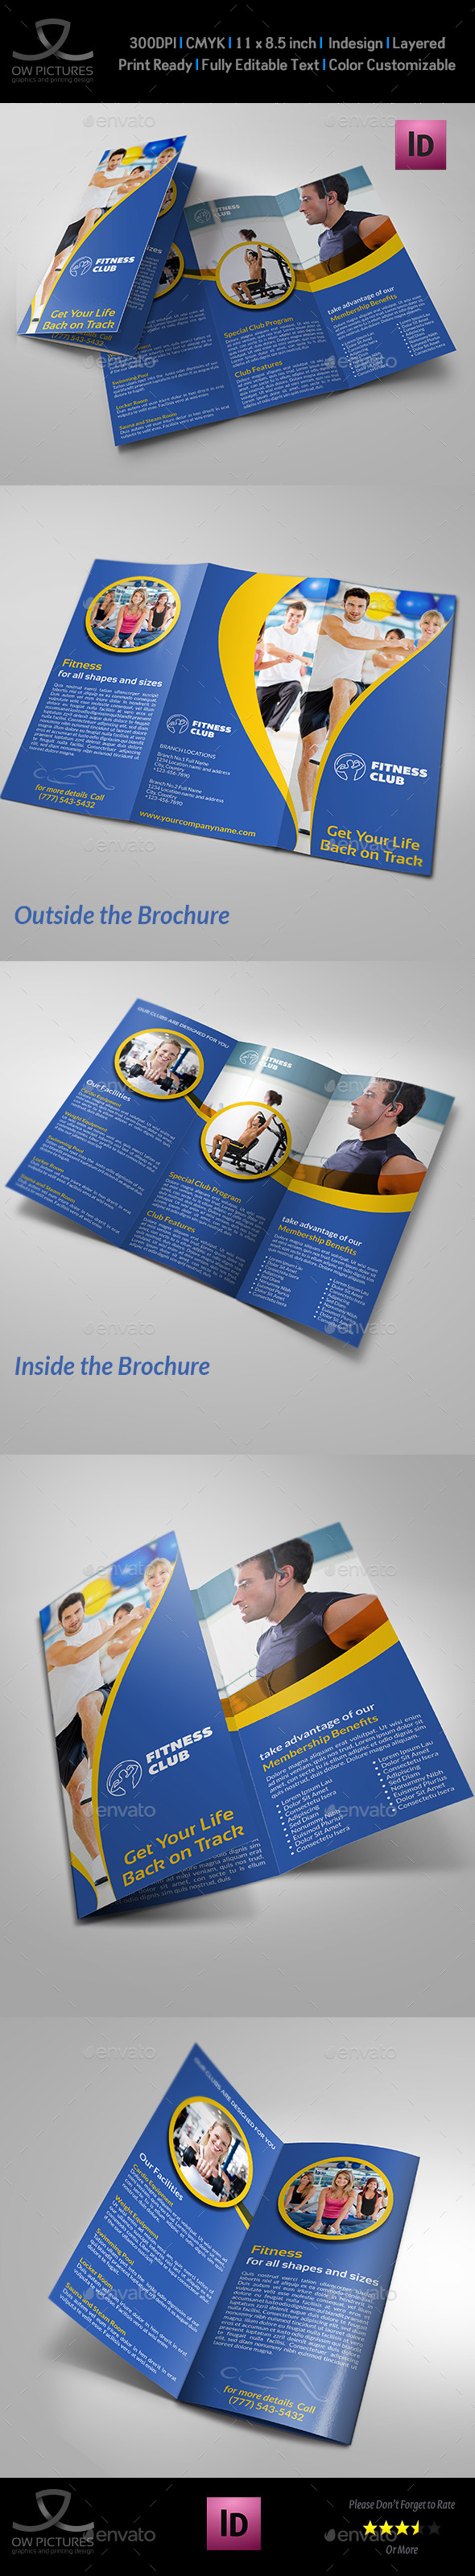 Fitness - GYM Tri-Fold Template Vol.3 - Brochures Print Templates